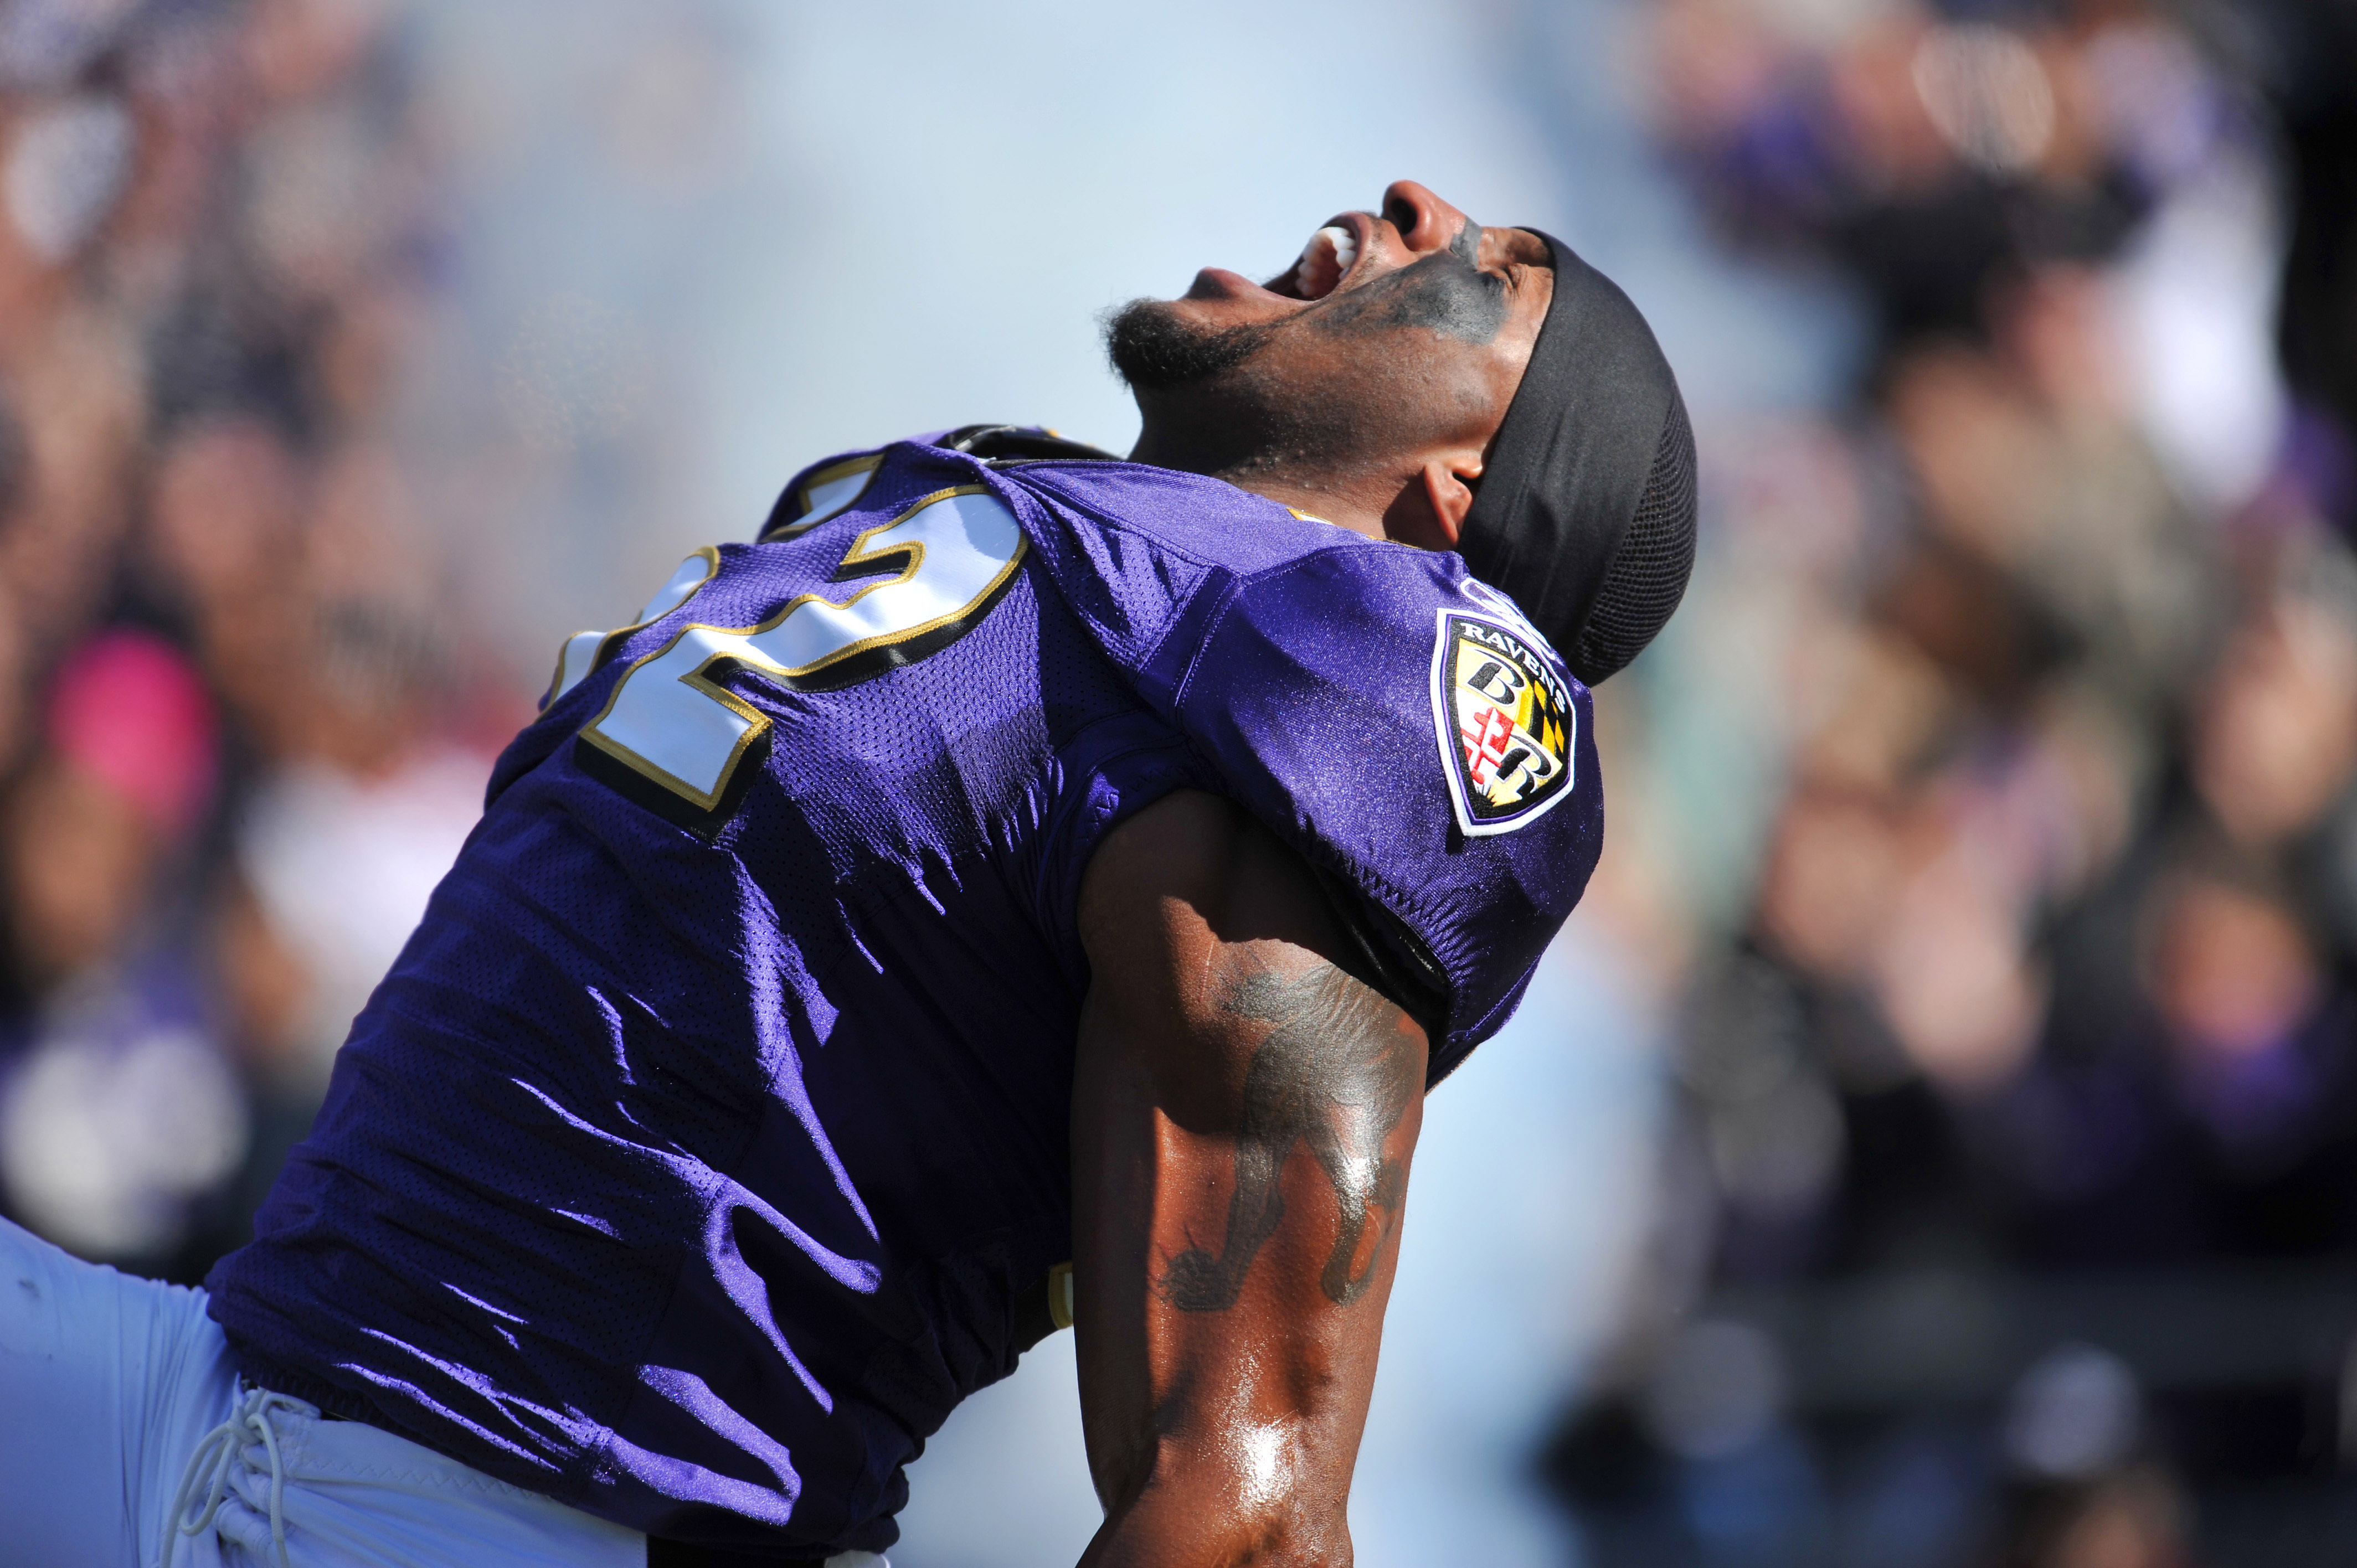 Ray Lewis Named a Pro Football Hall of Famer - The Baltimore Feather bf253bc4c